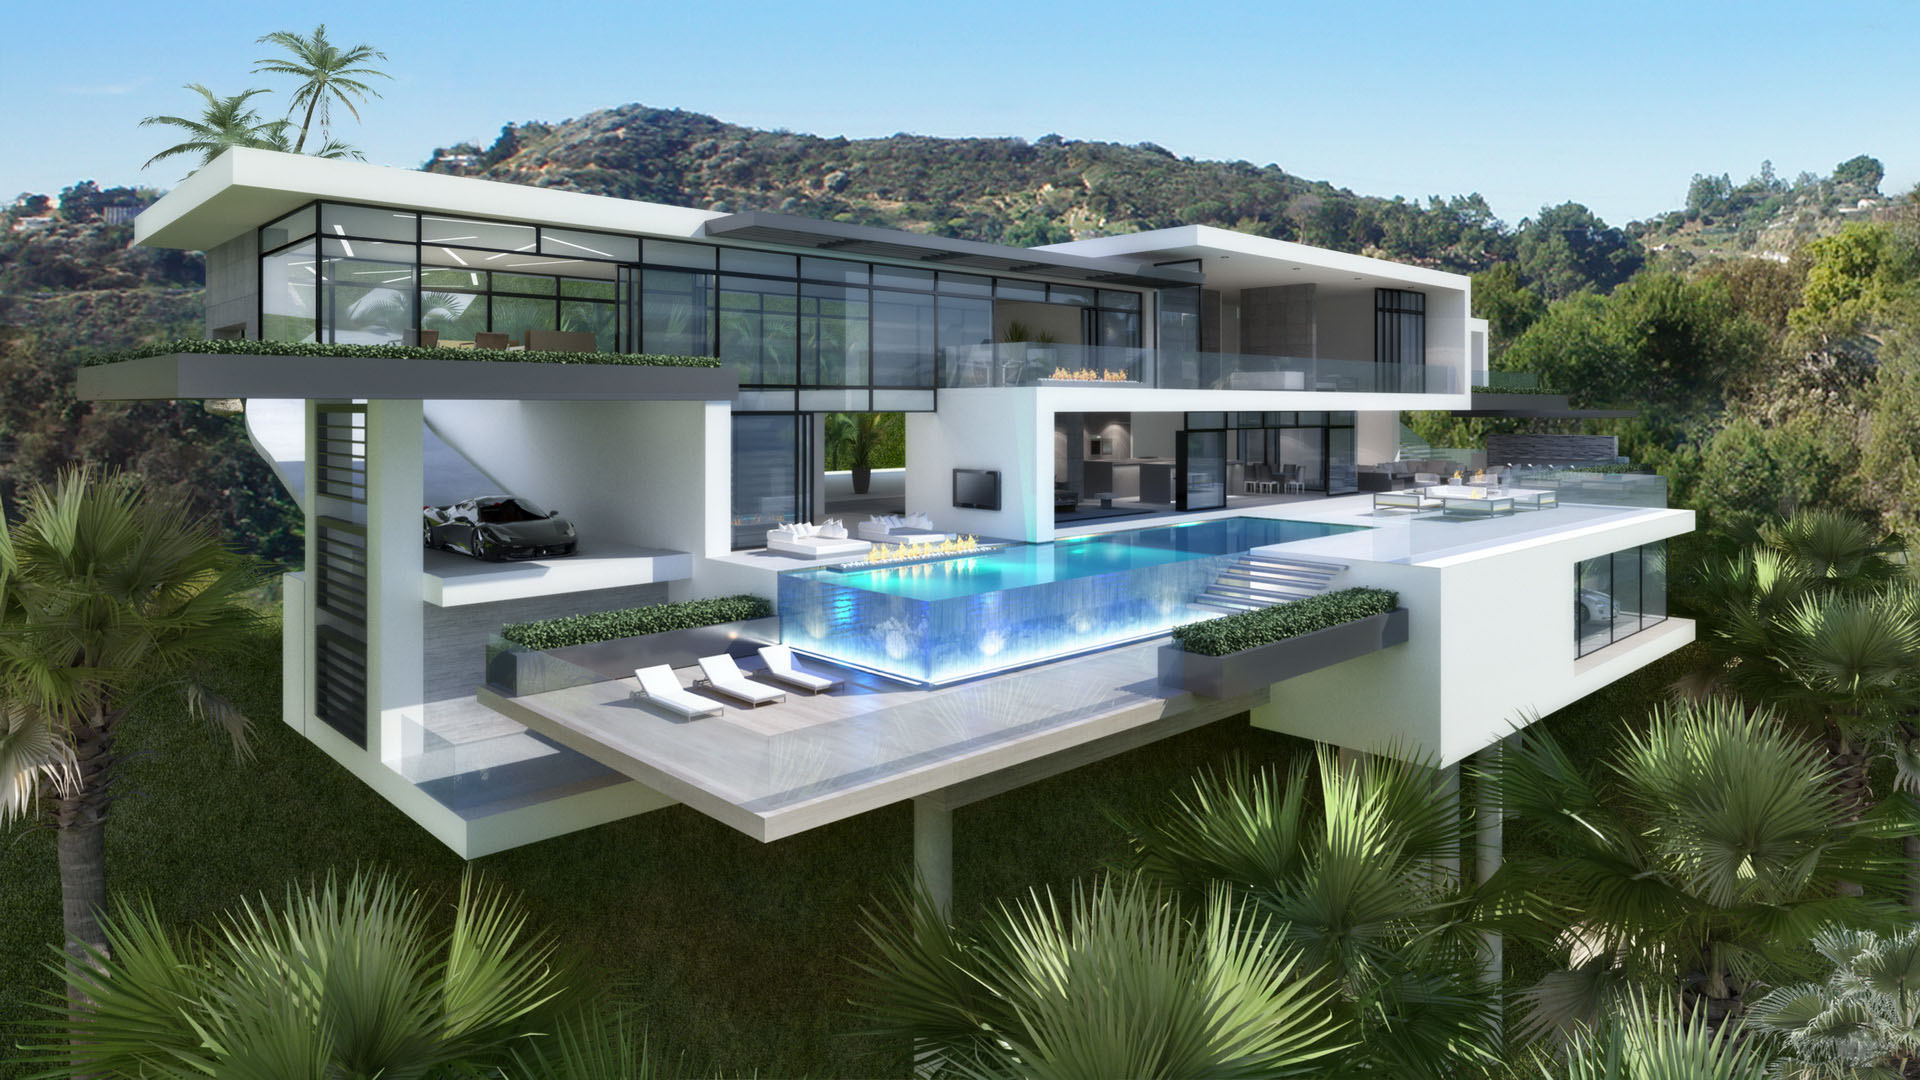 When they will finally become a reality these homes will undoubtedly become some of the most popular and sought after residences in los angeles